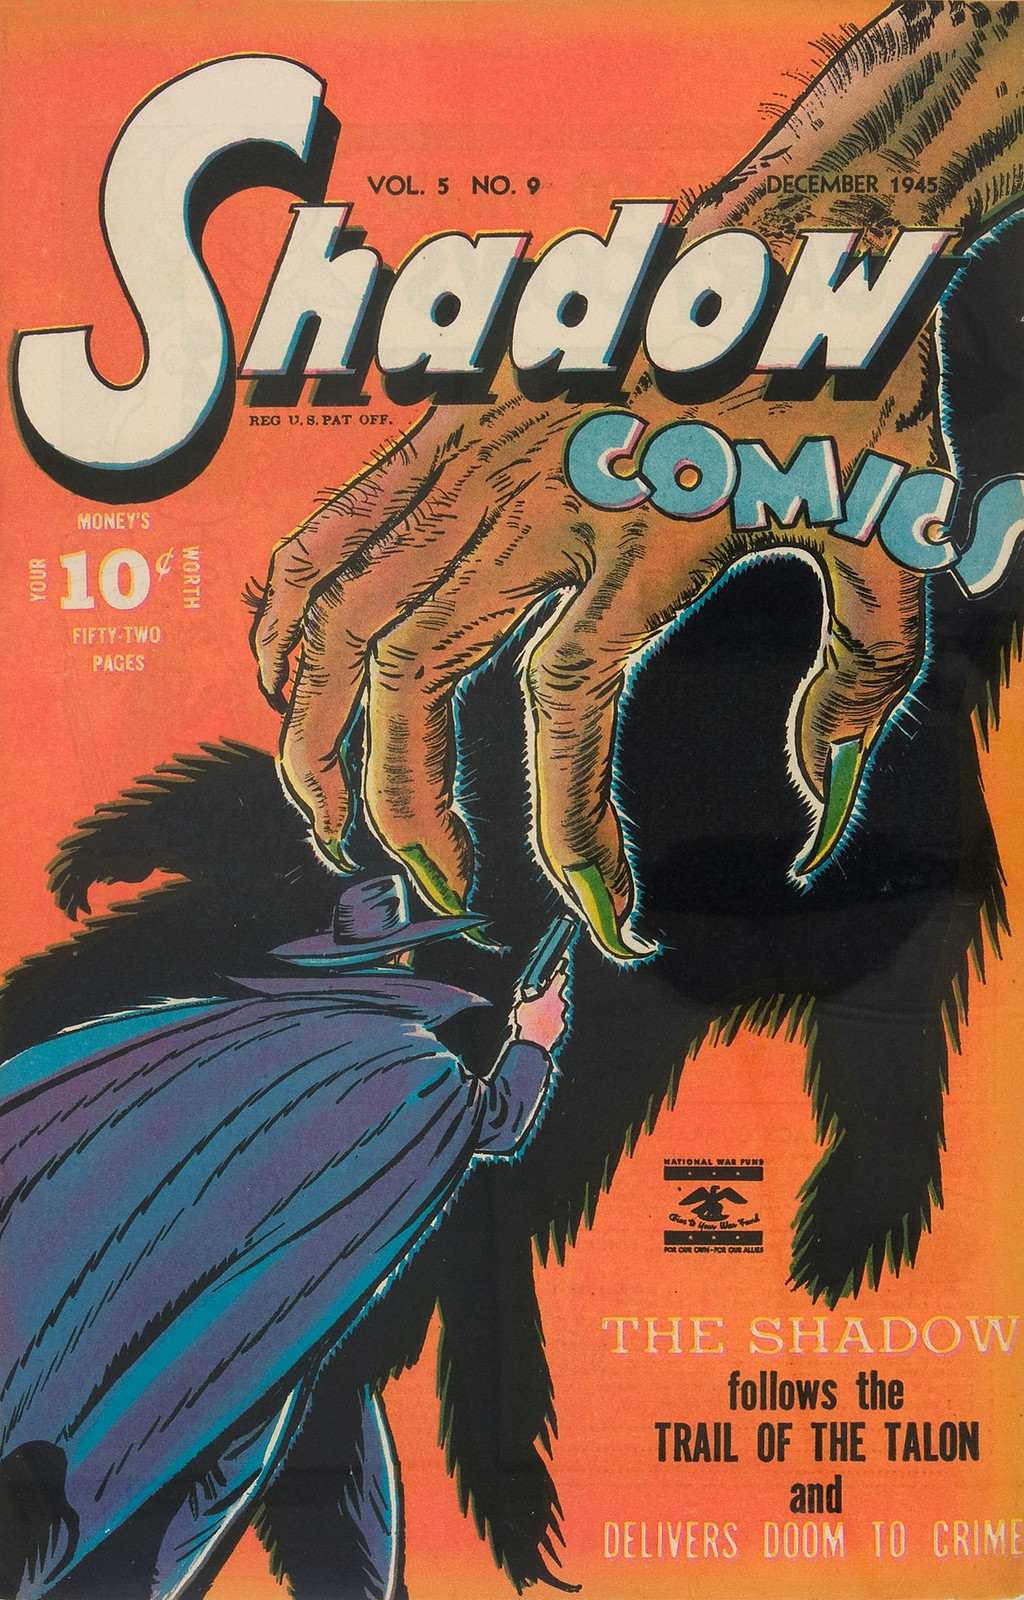 Shadow Comics v5 #9 (Street & Smith Pub., 1945) Charles Coll Cover